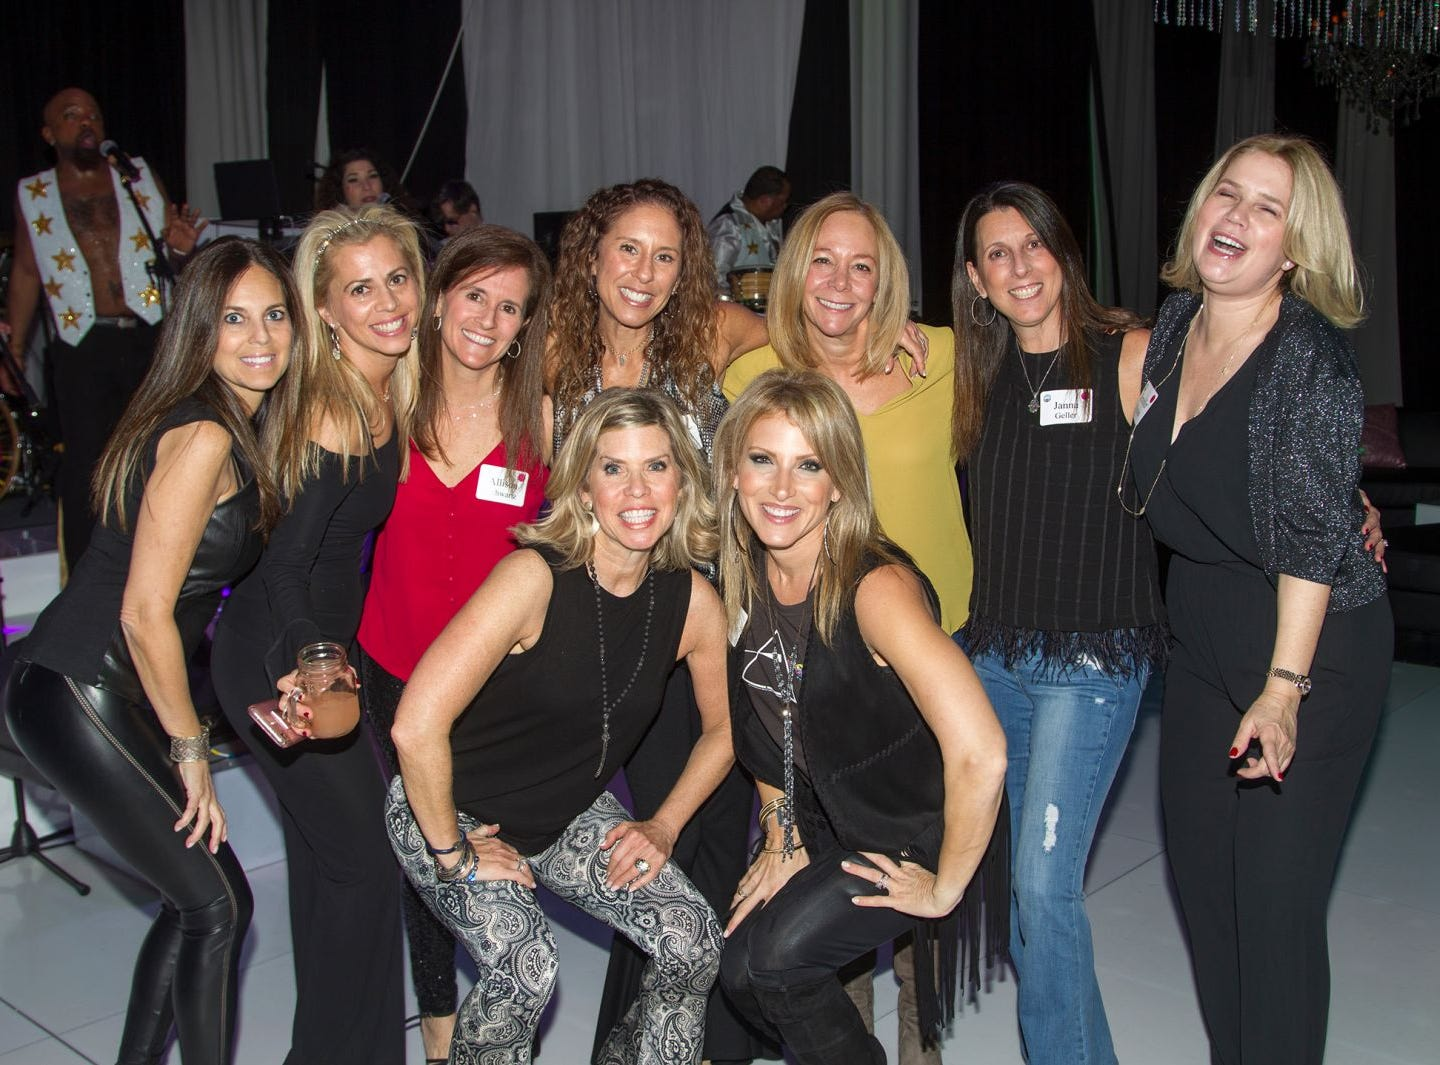 Jewish Federation of Northern New Jersey held its first Girl's Night Out dance party at Space in Englewood. 01/24/2019